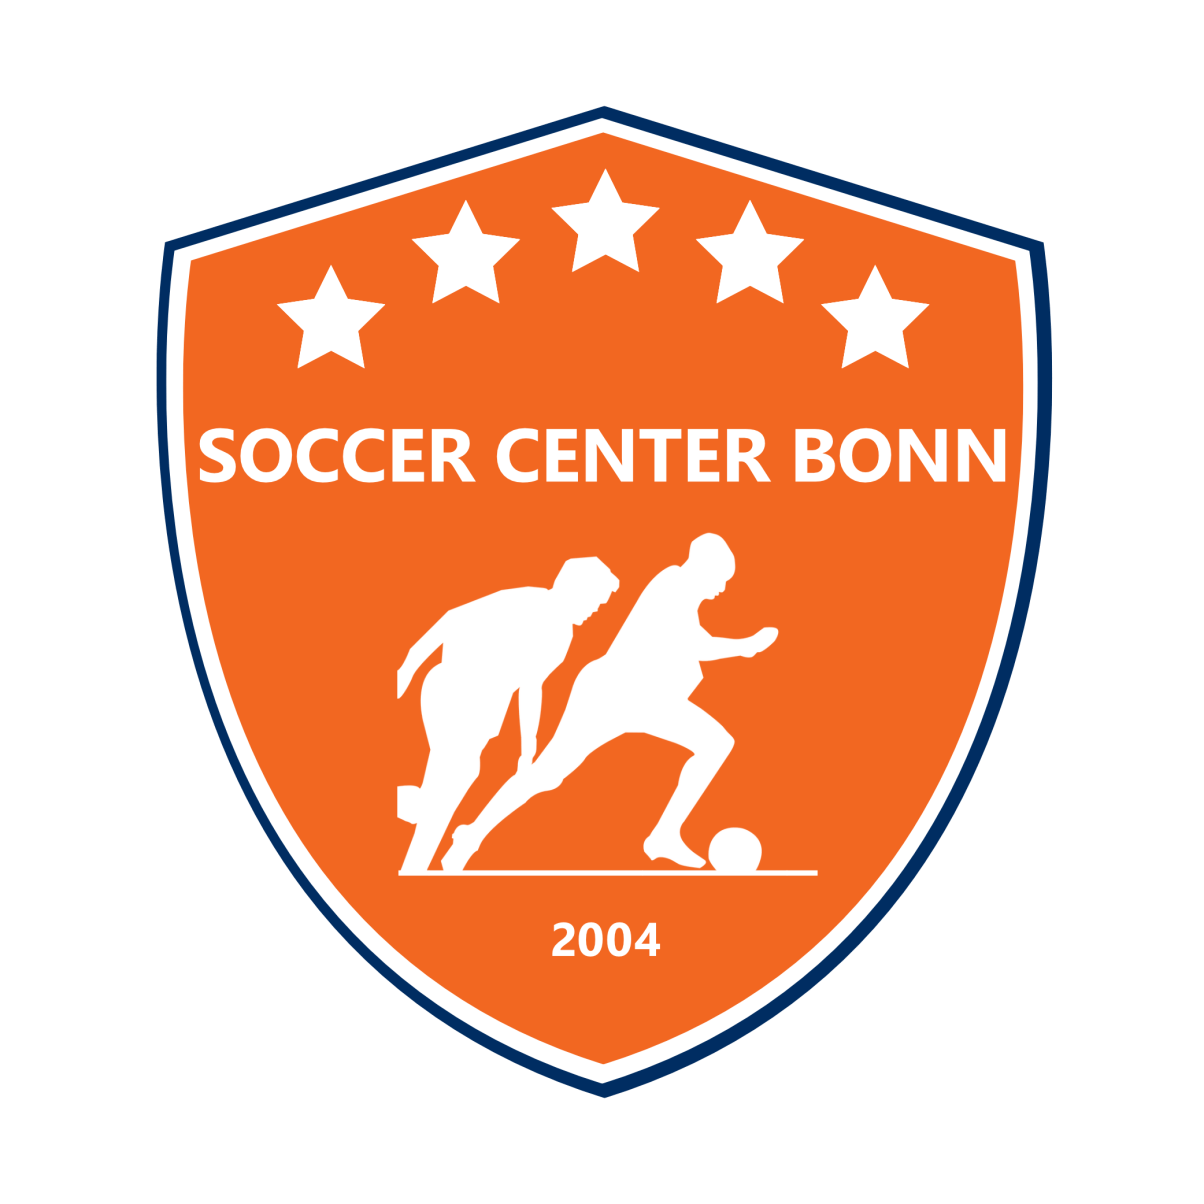 Soccer Center Bonn